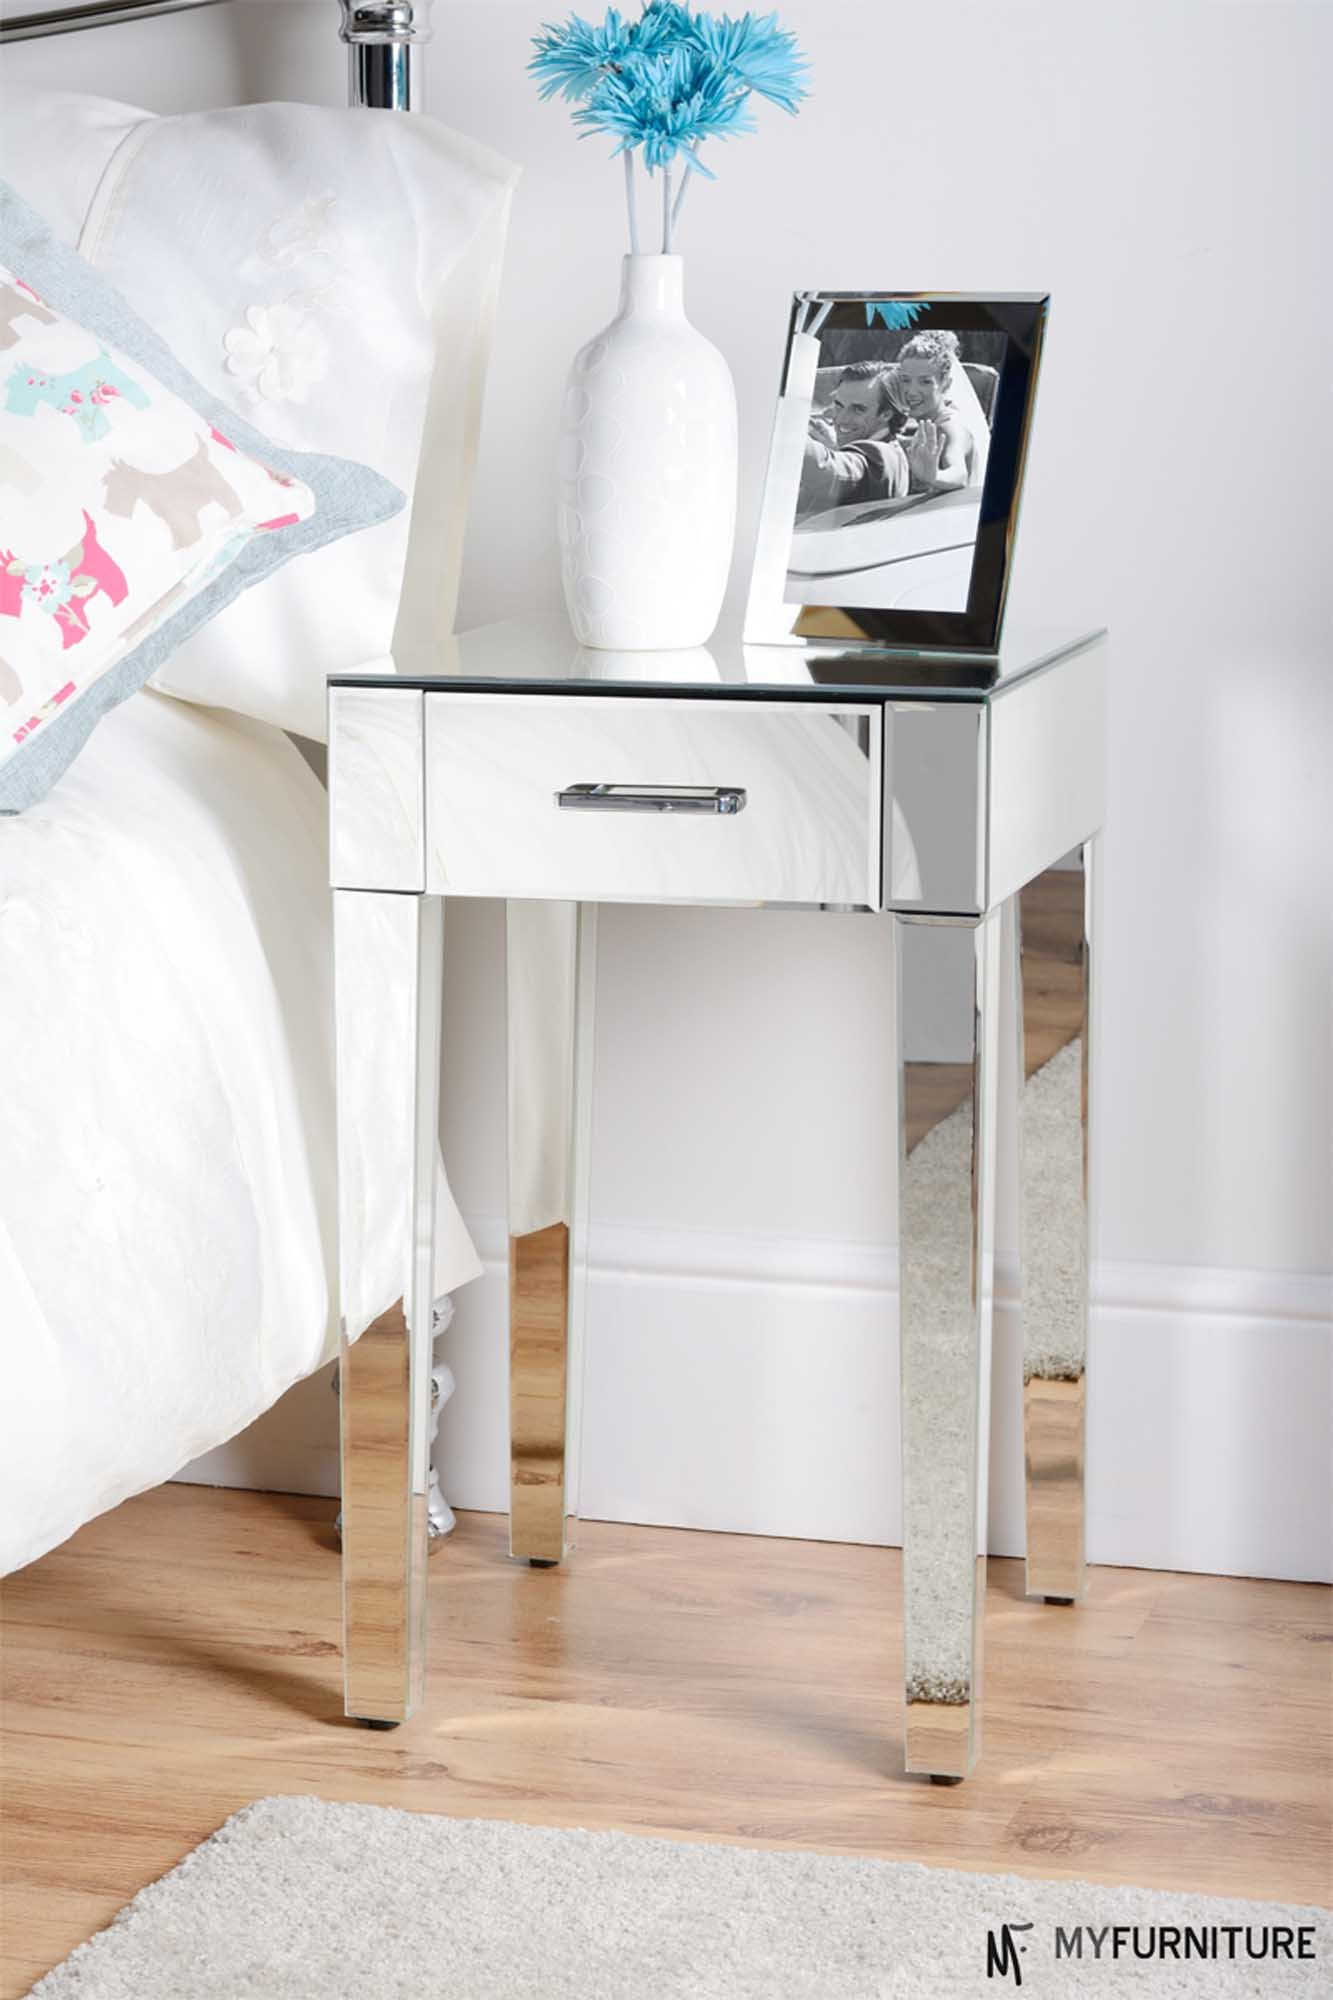 the fantastic free nightstand mirrored ideas hotxpress decorating nightstands small bedside table for bedroom beautiful complete your home furniture tall gold vanity silver oak